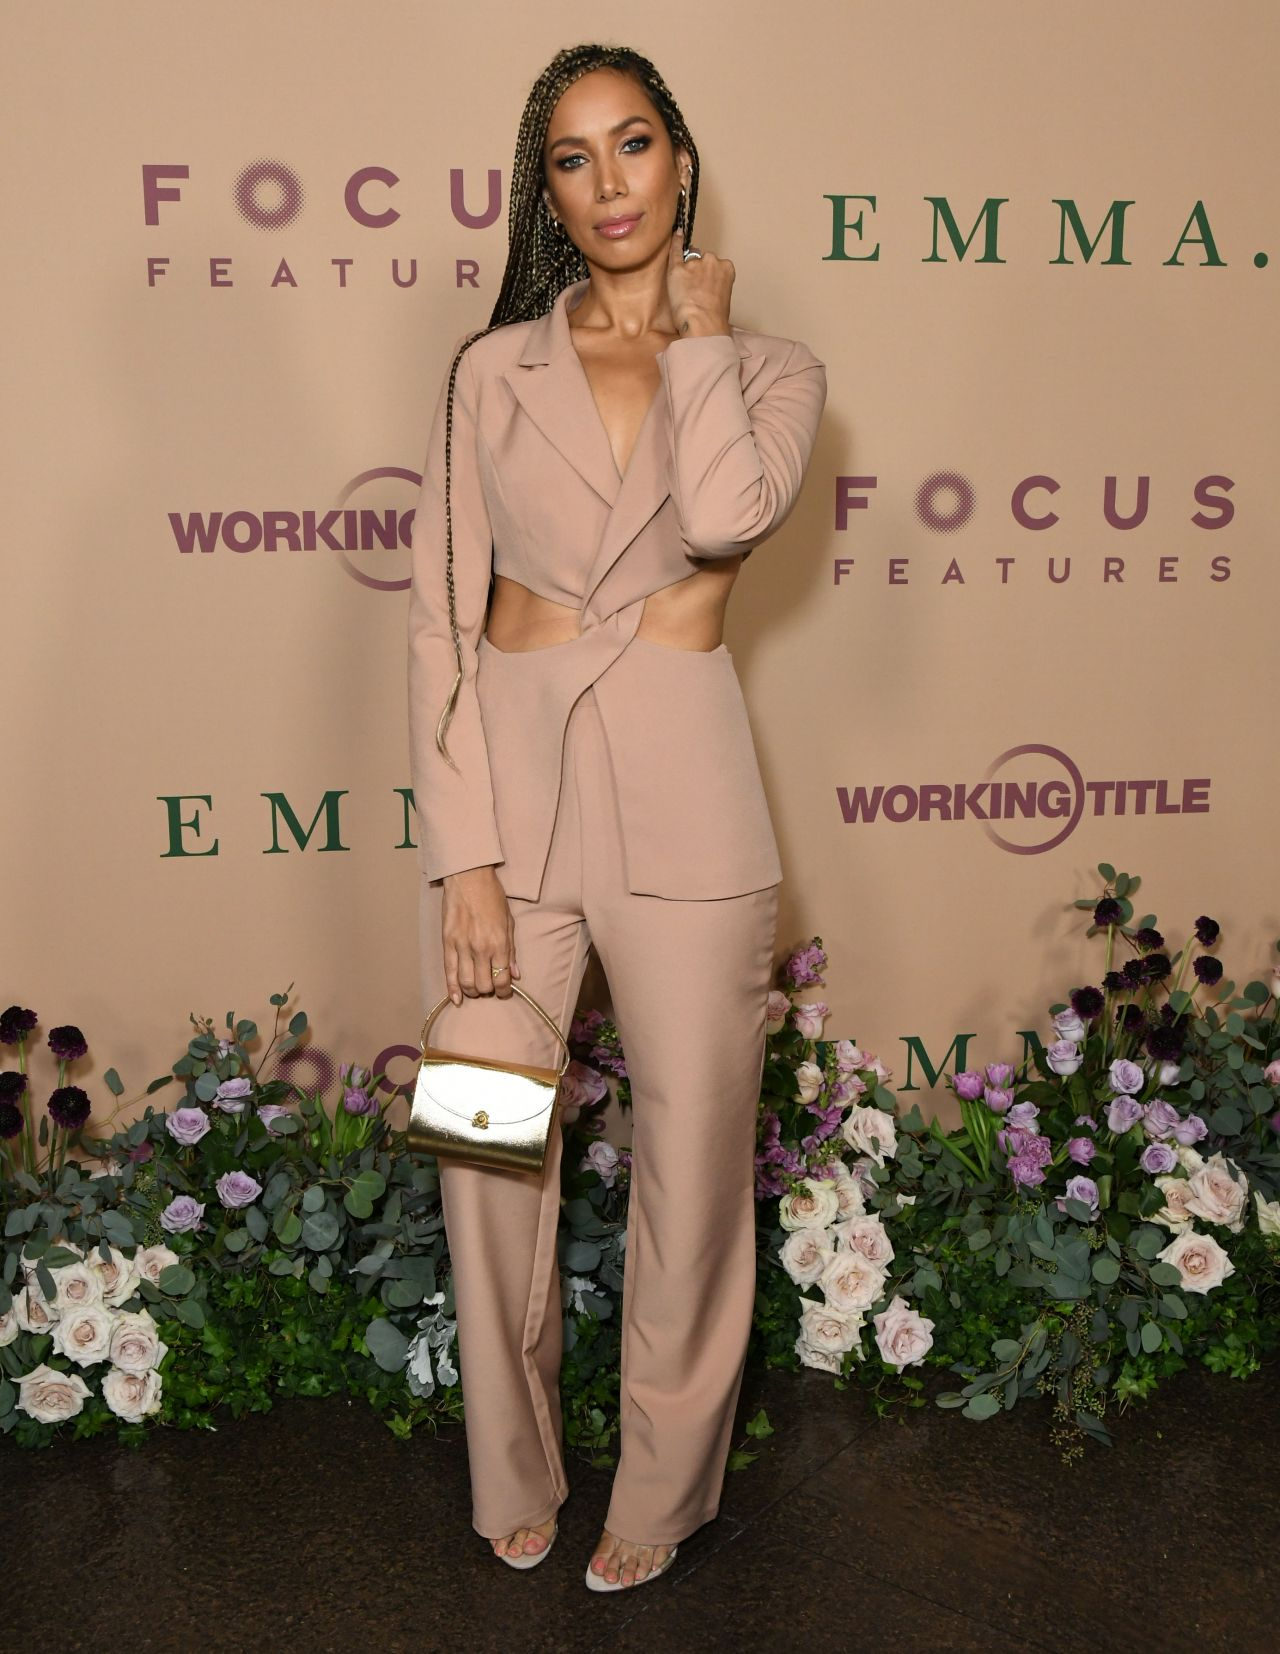 leona-lewis-in-a-cut-out-blazer-suit-emma-la-premiere